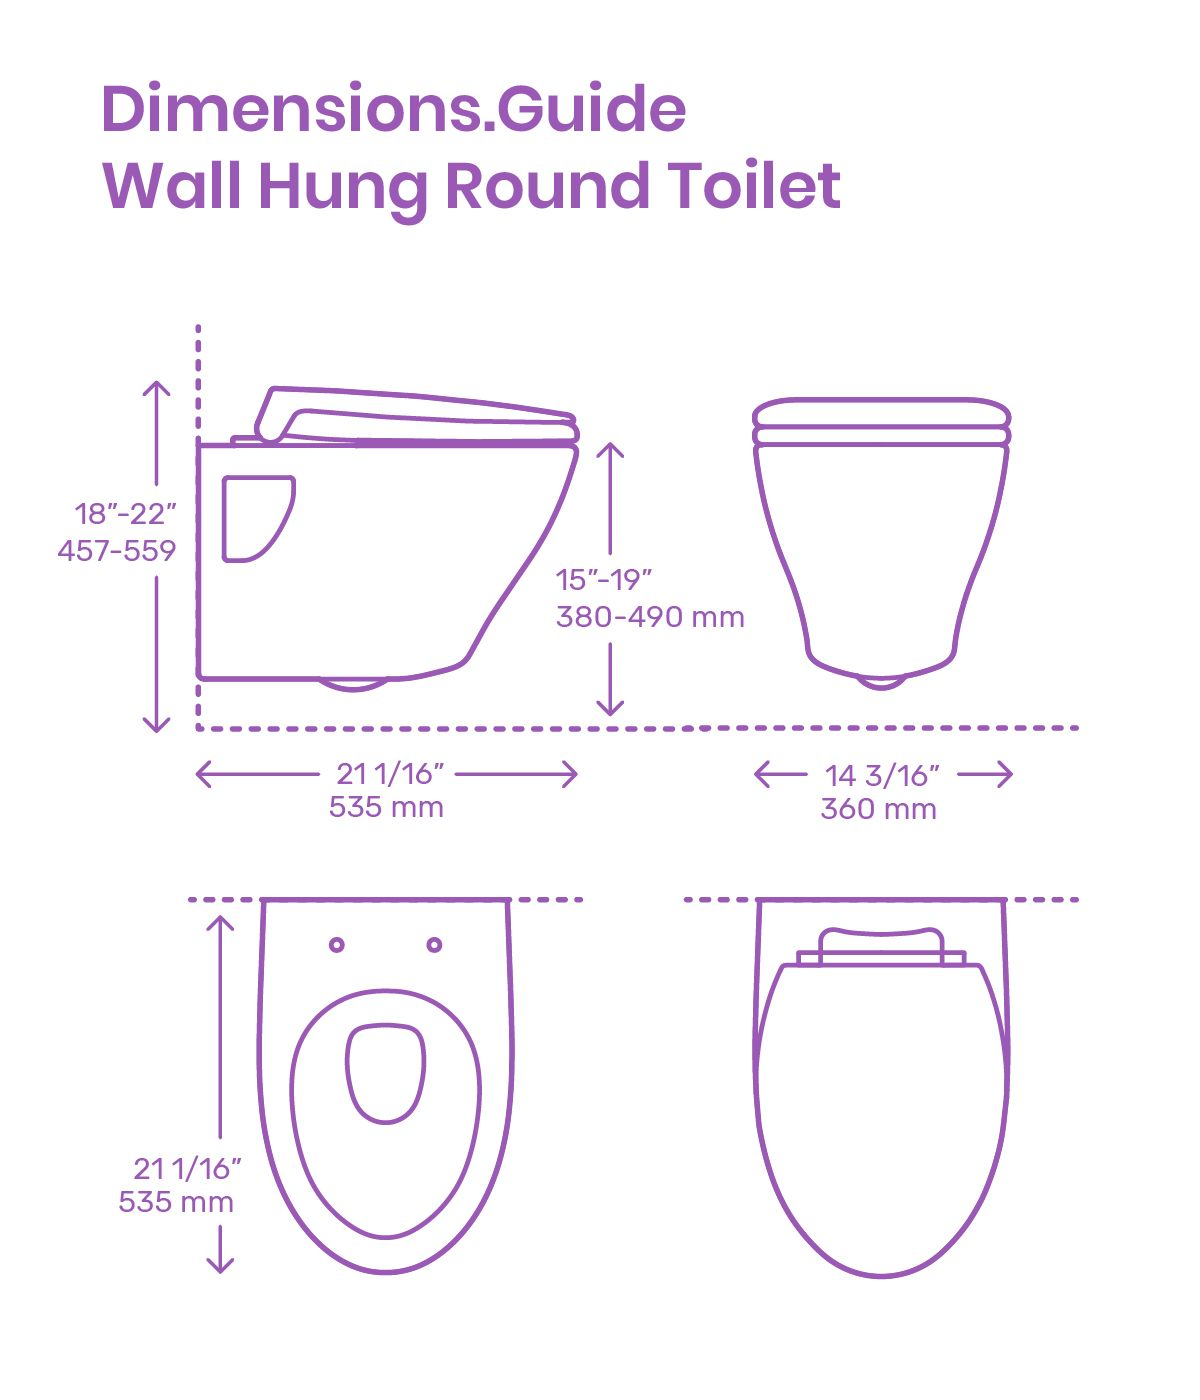 Wall Hung Round Toilet Bathroom Dimensions Modern Toilet How To Plan